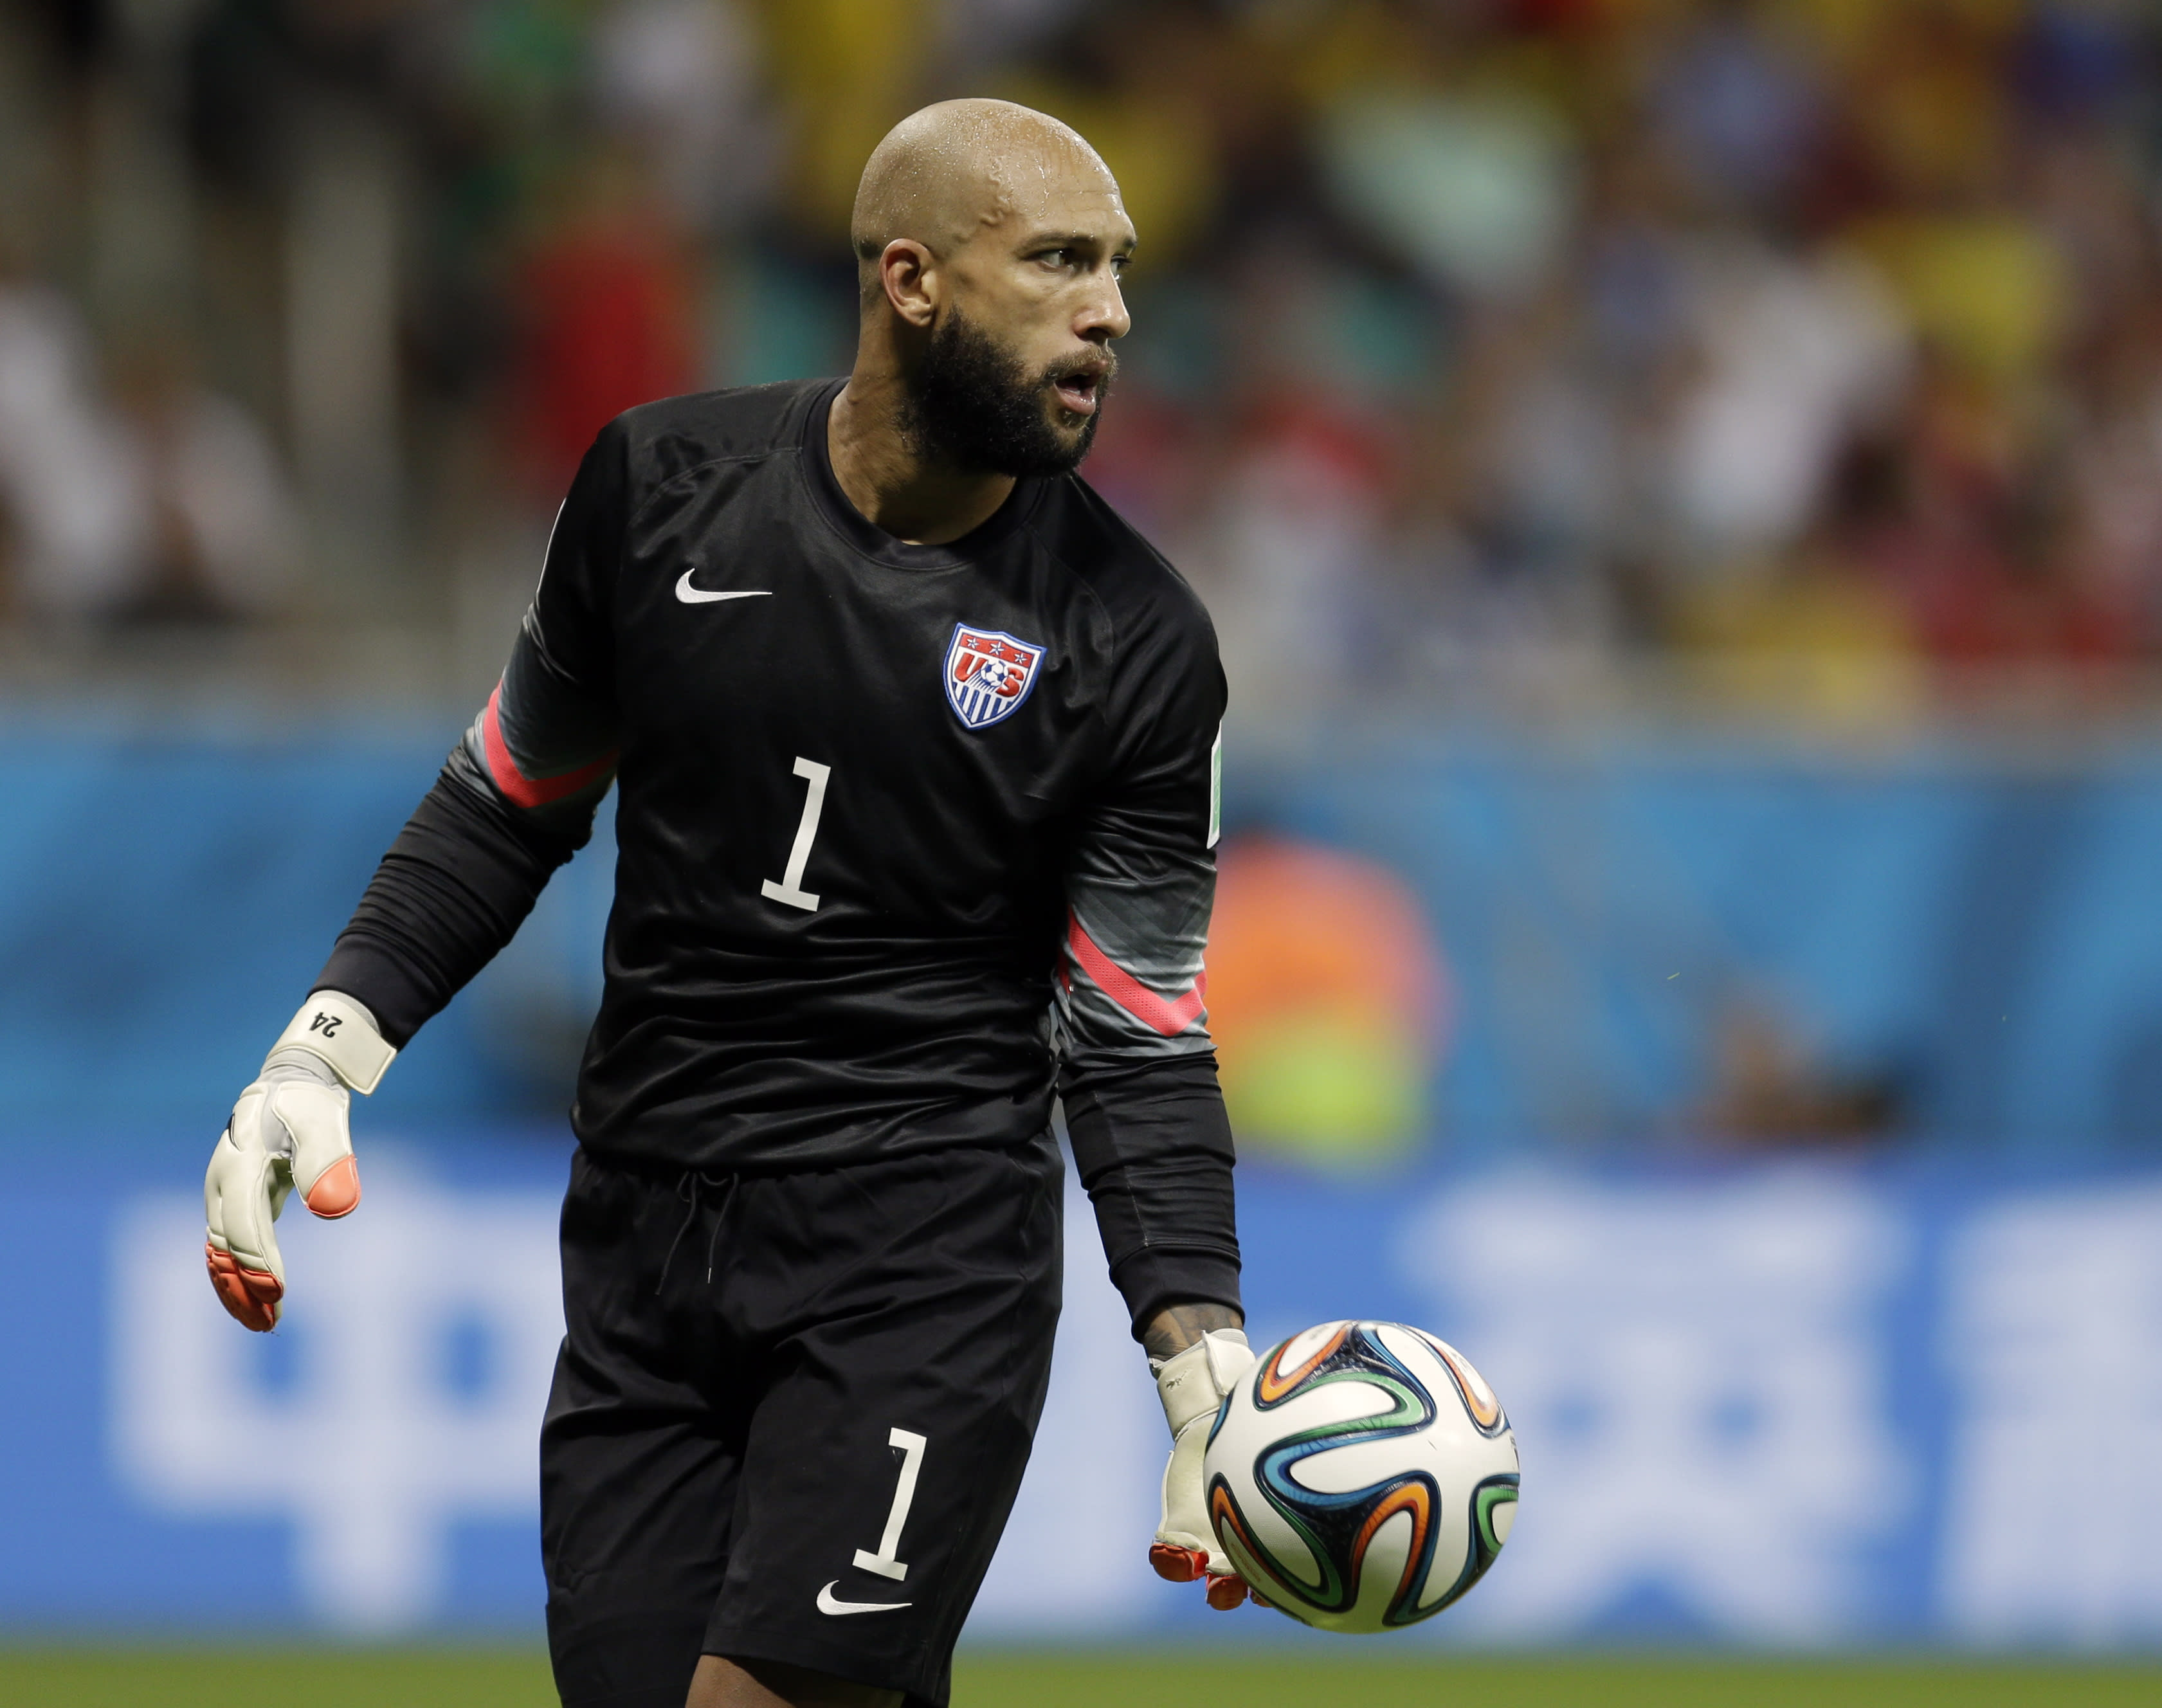 a222575f4 Tim Howard to retire after the 2019 MLS season